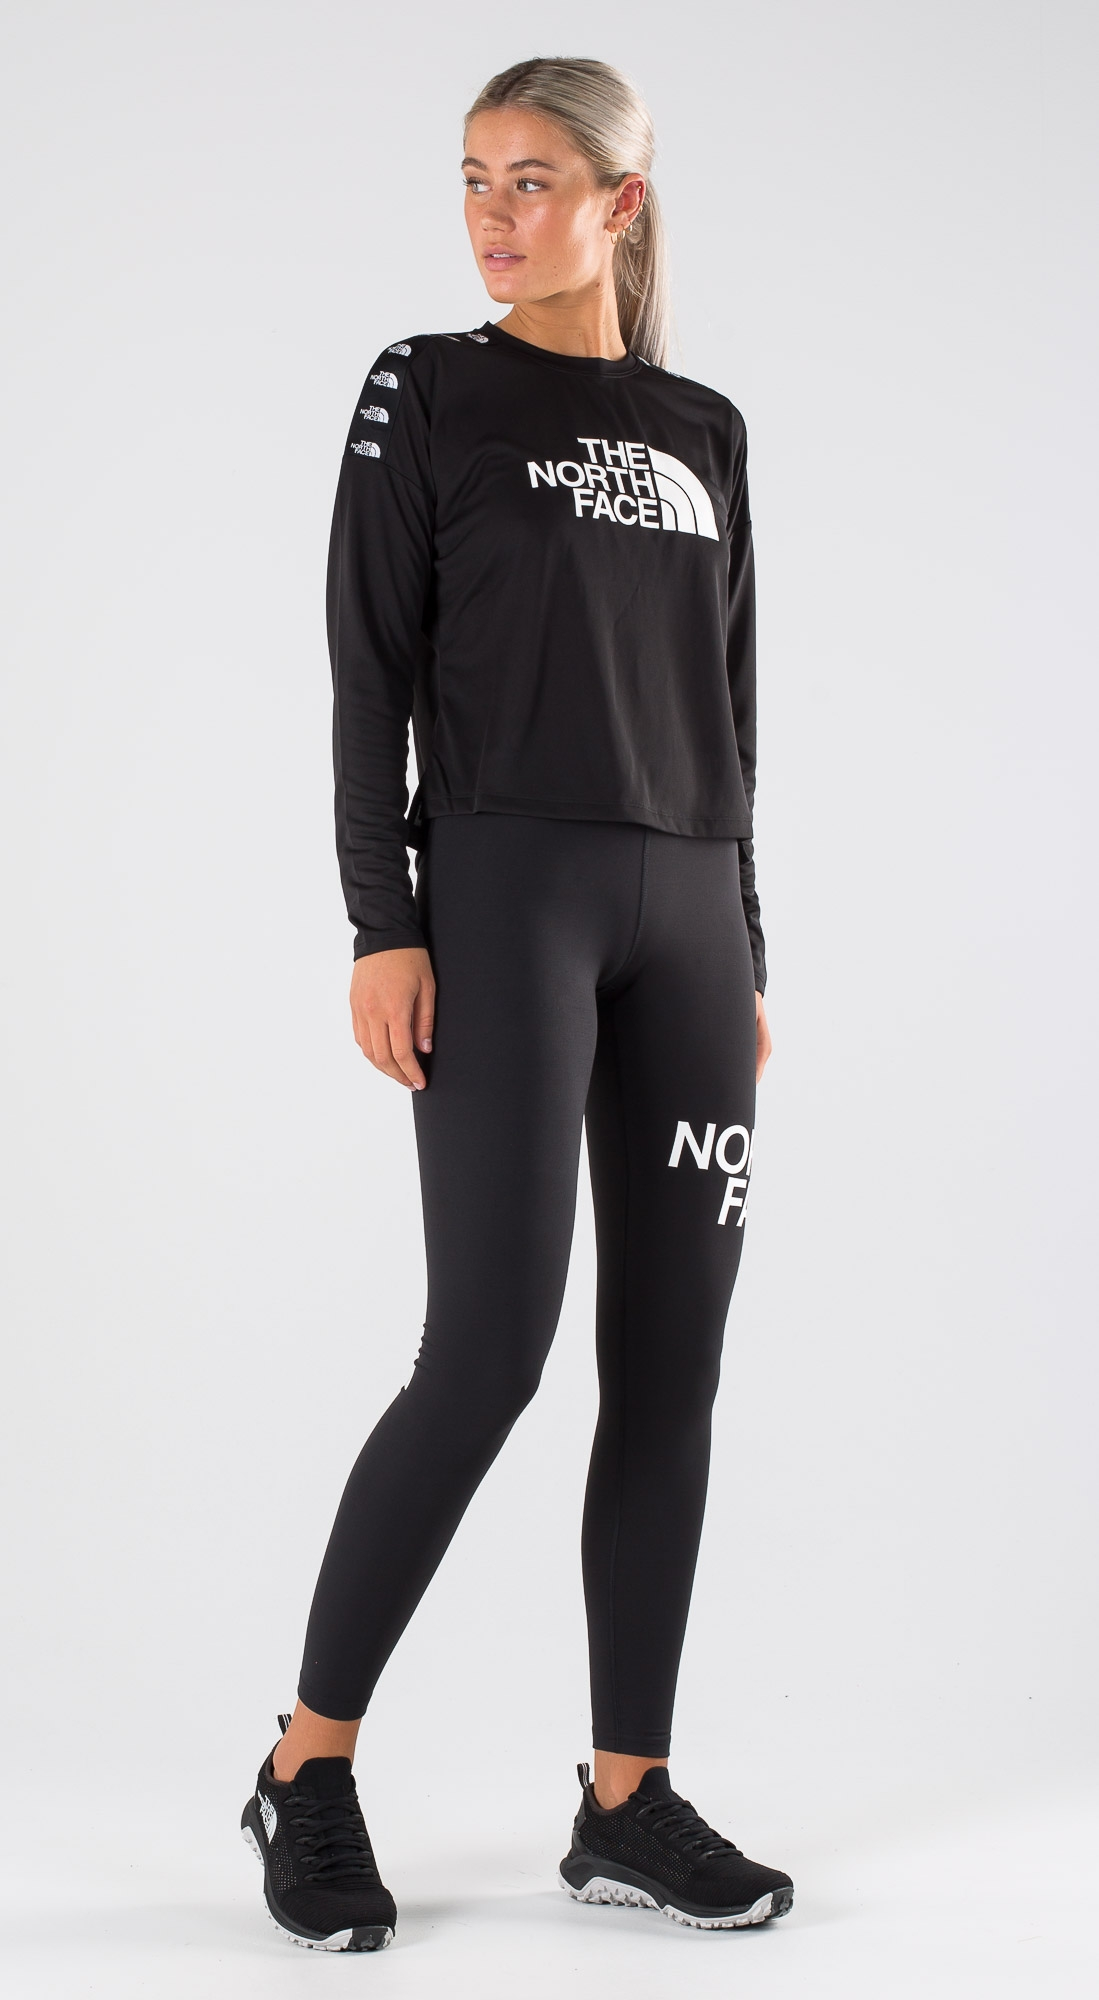 The North Face TNL Crop LS Outfit Ridestore